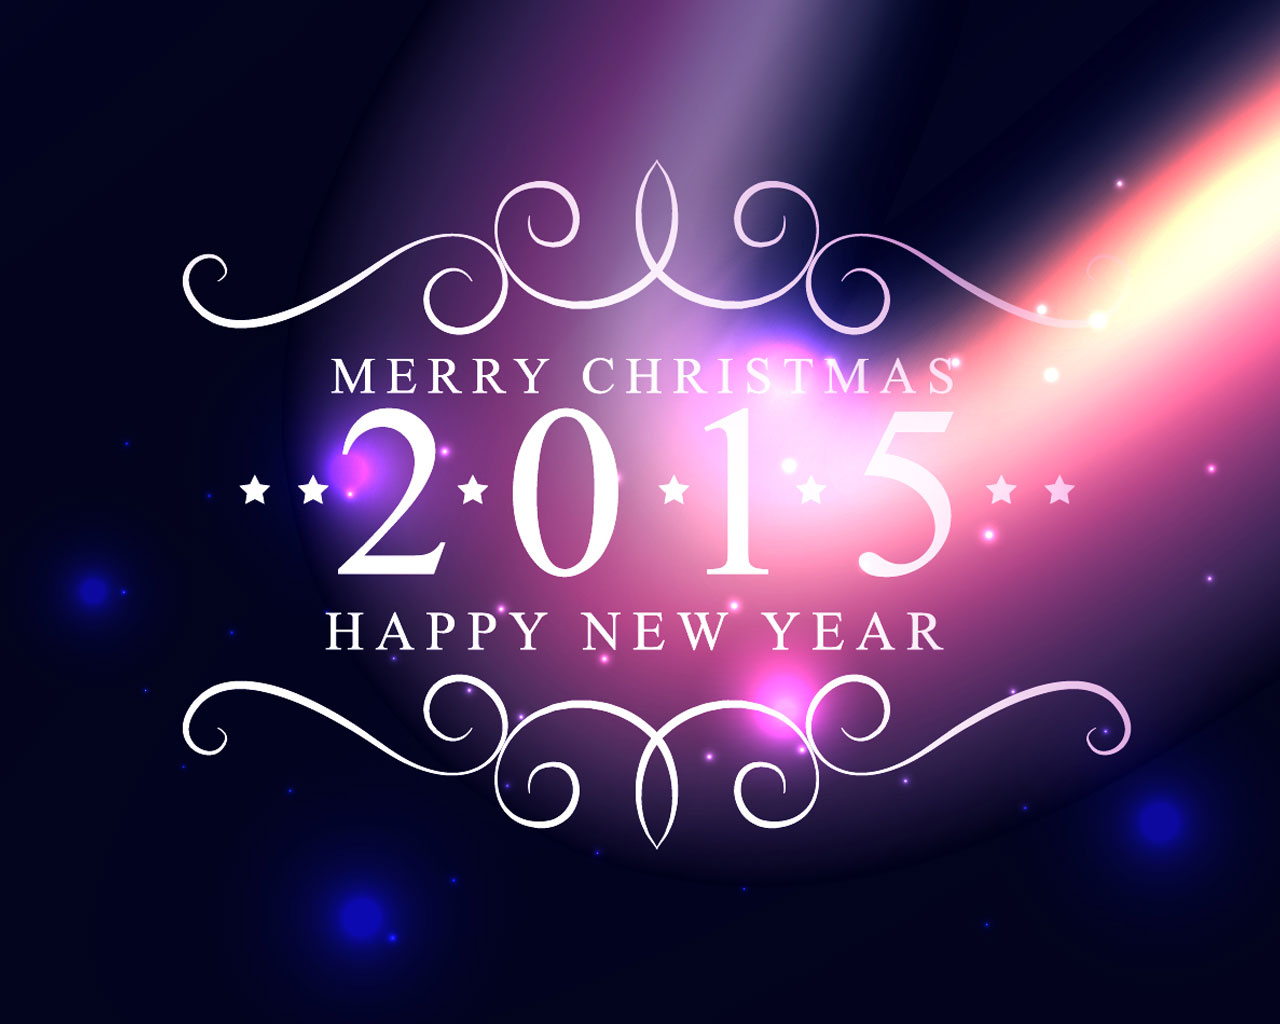 Happy New Year 2015 Wallpapers Images Facebook Cover photos 1280x1024